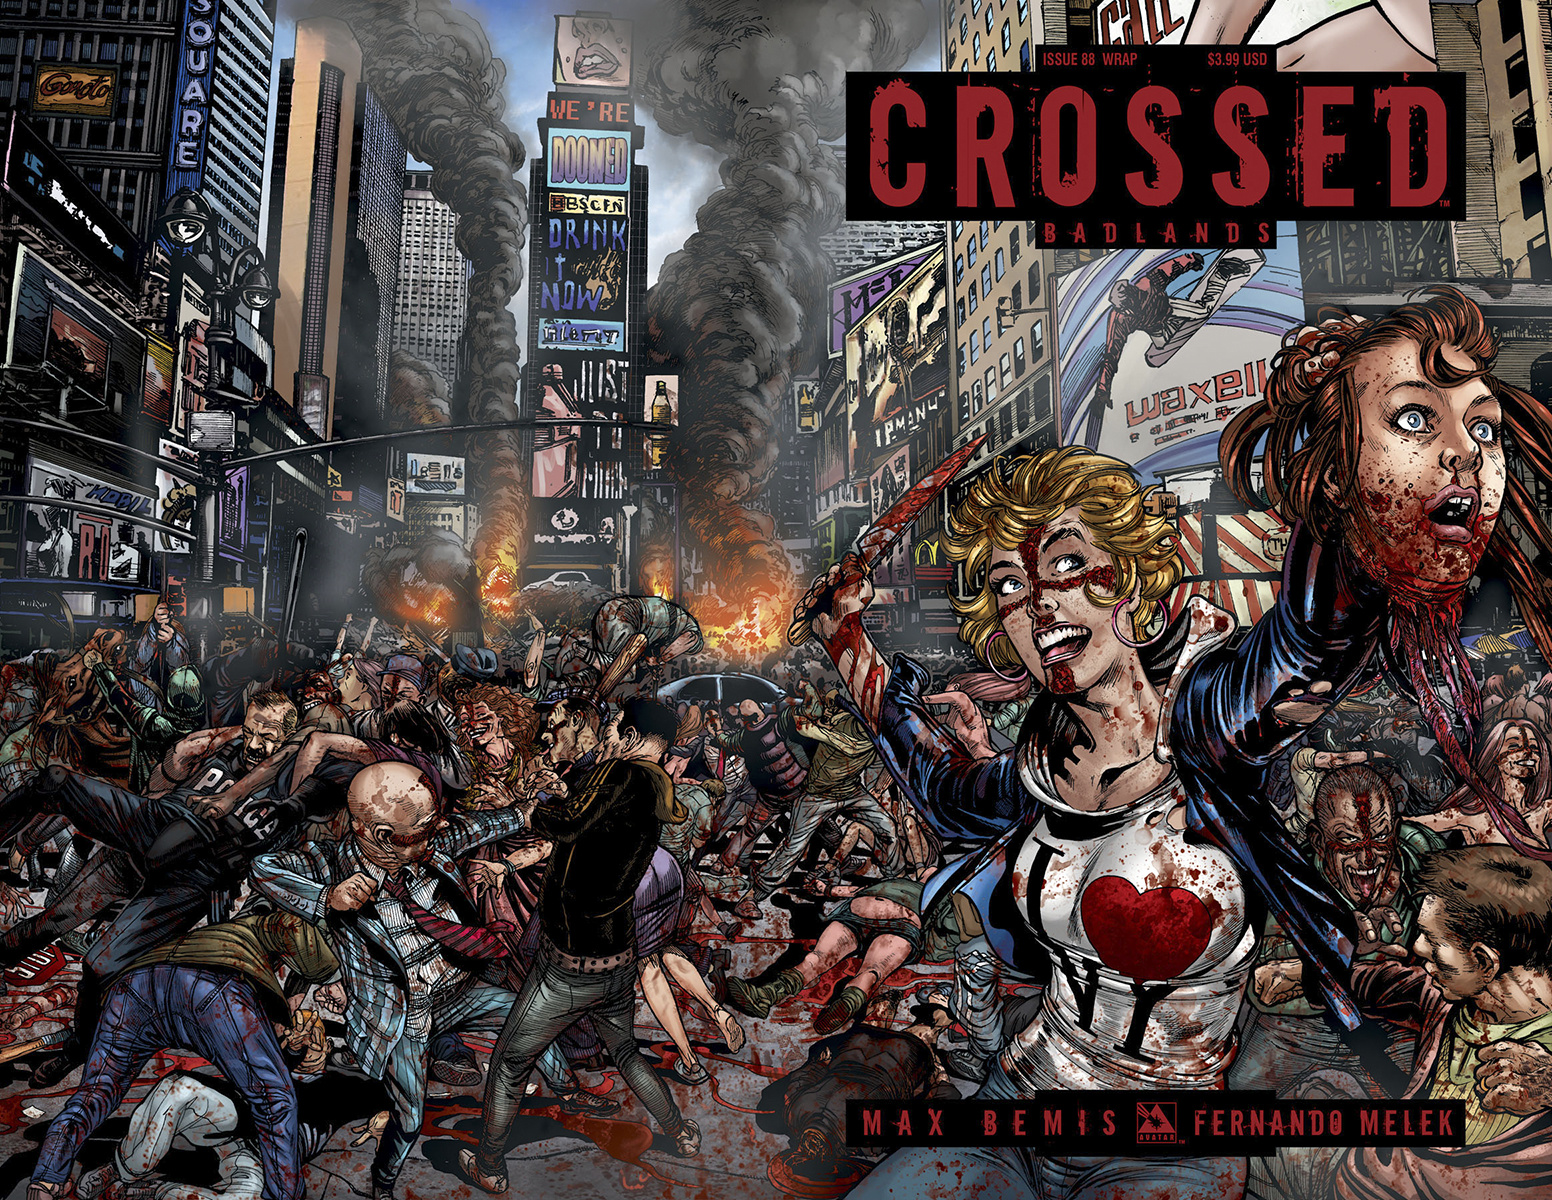 CROSSED BADLANDS #88 WRAP CVR (MR)